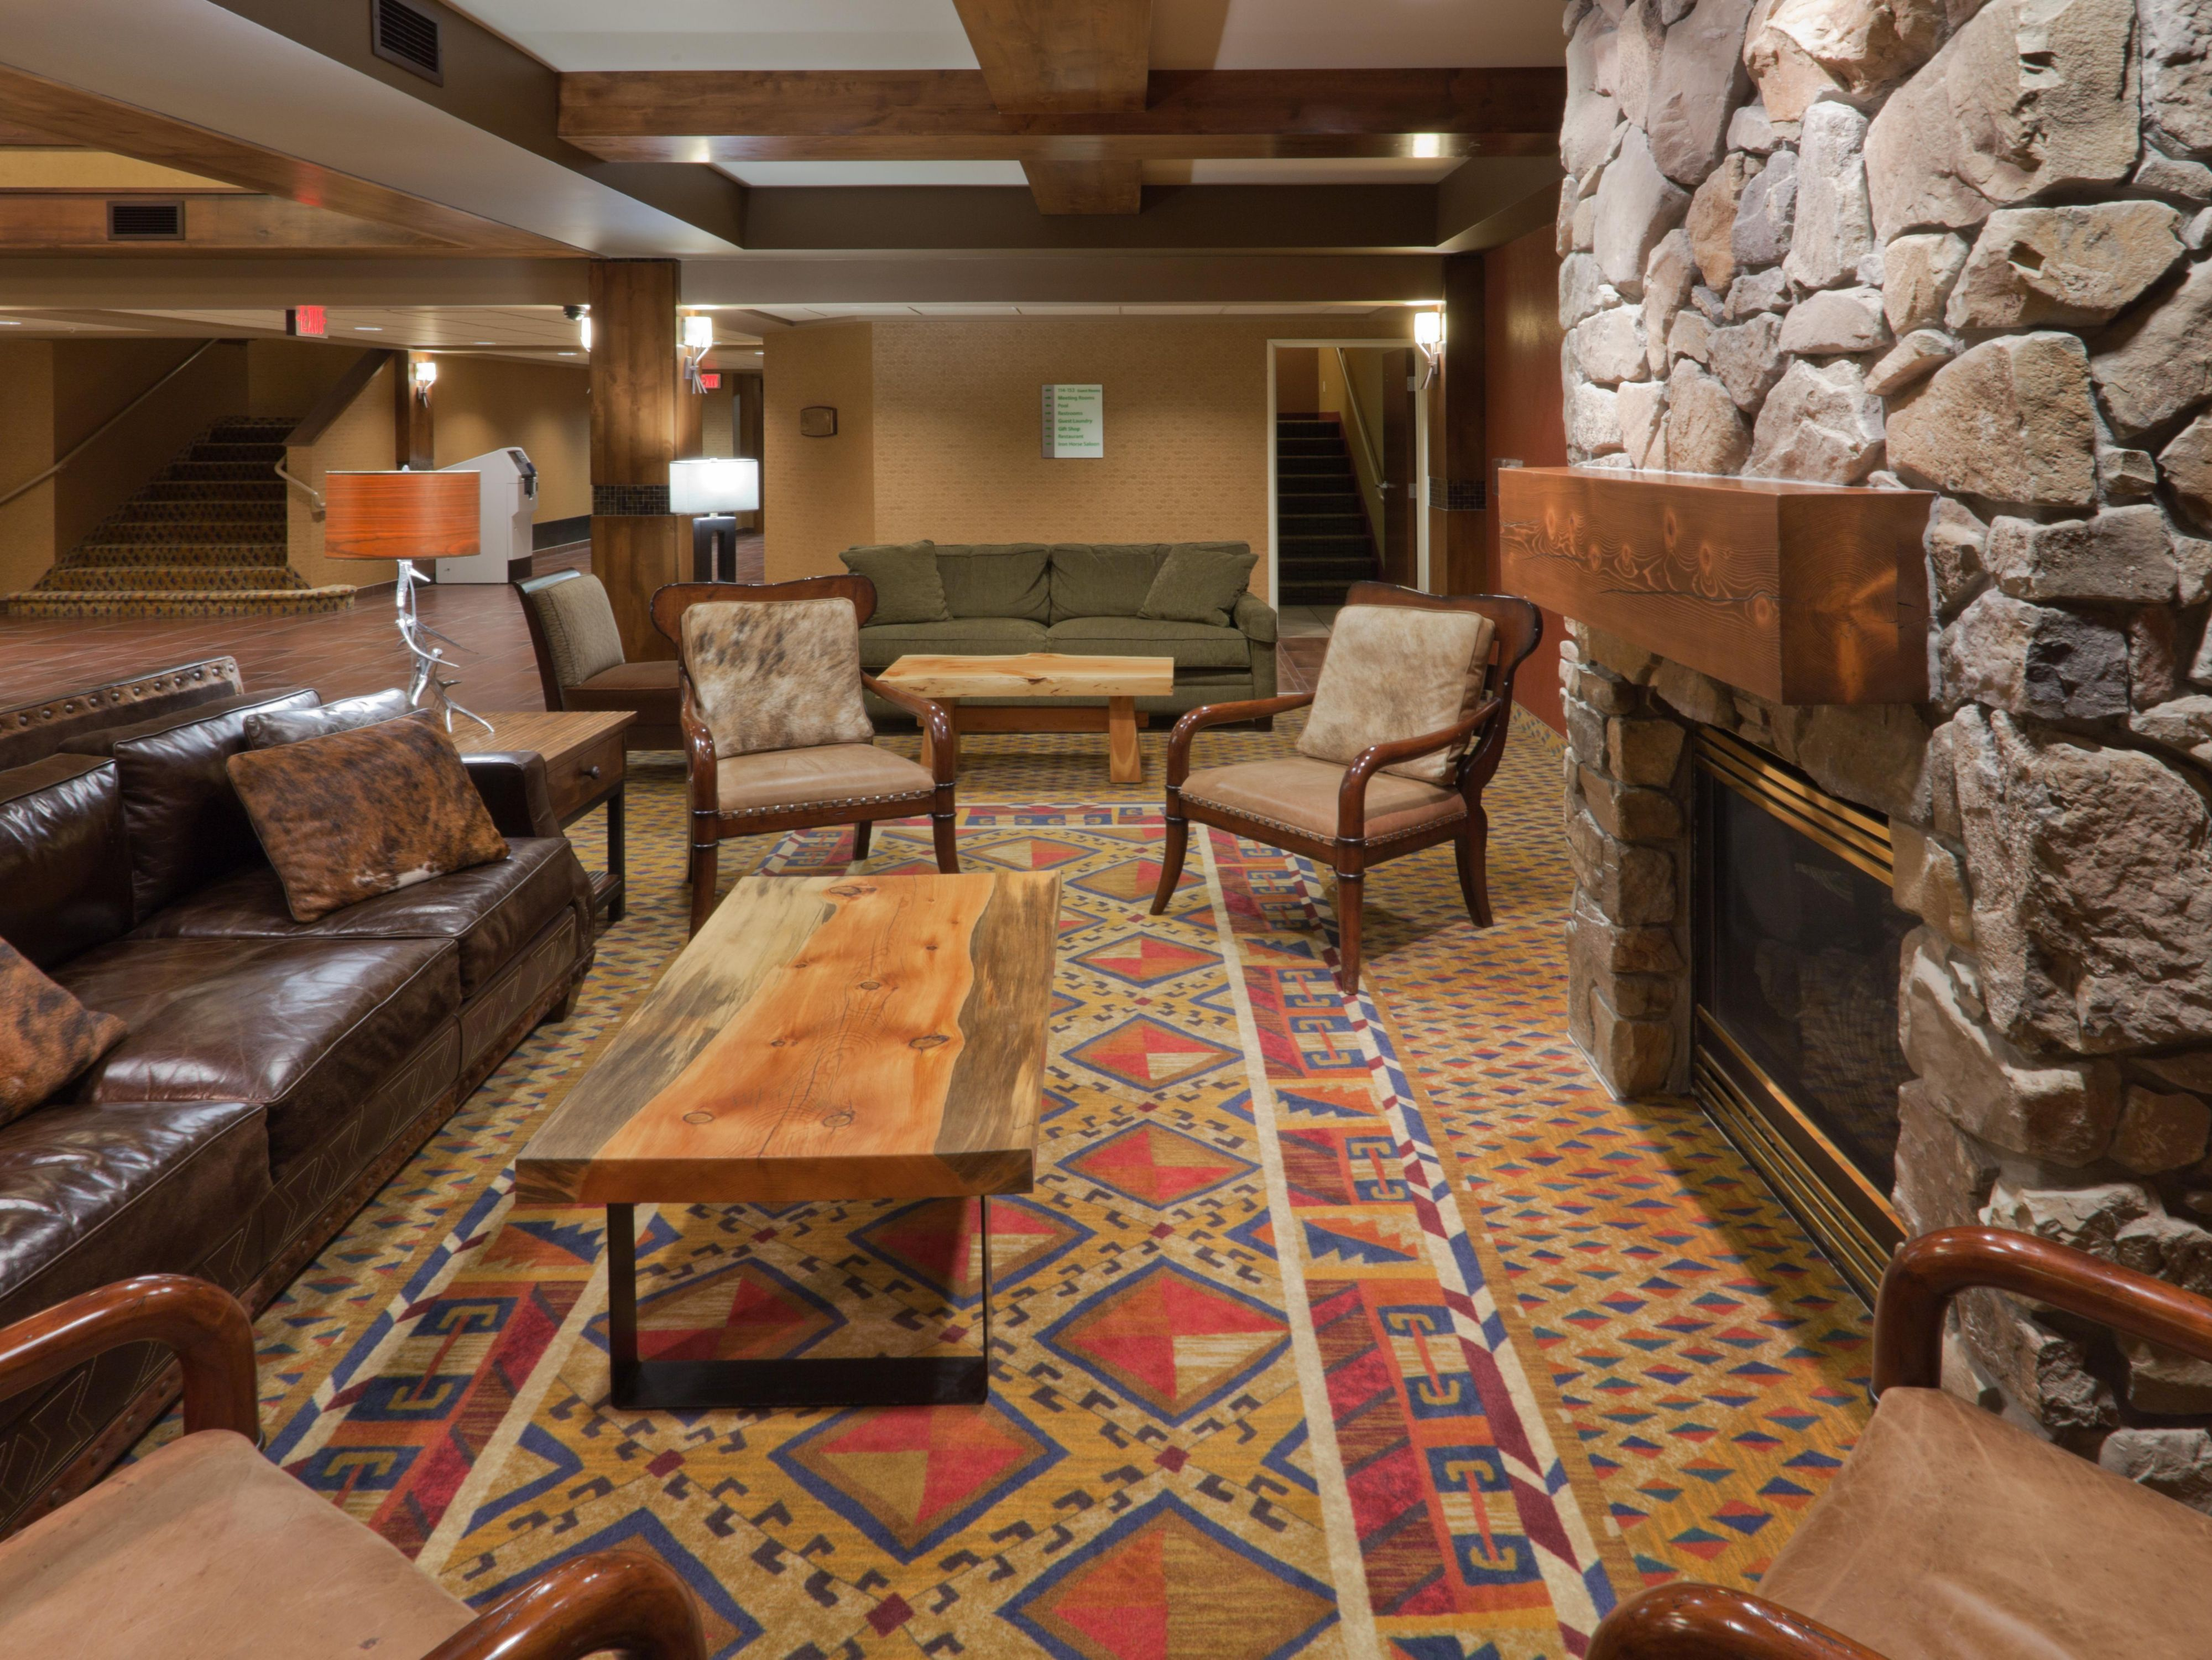 Holiday Inn West Yellowstone's cozy lobby fireplace